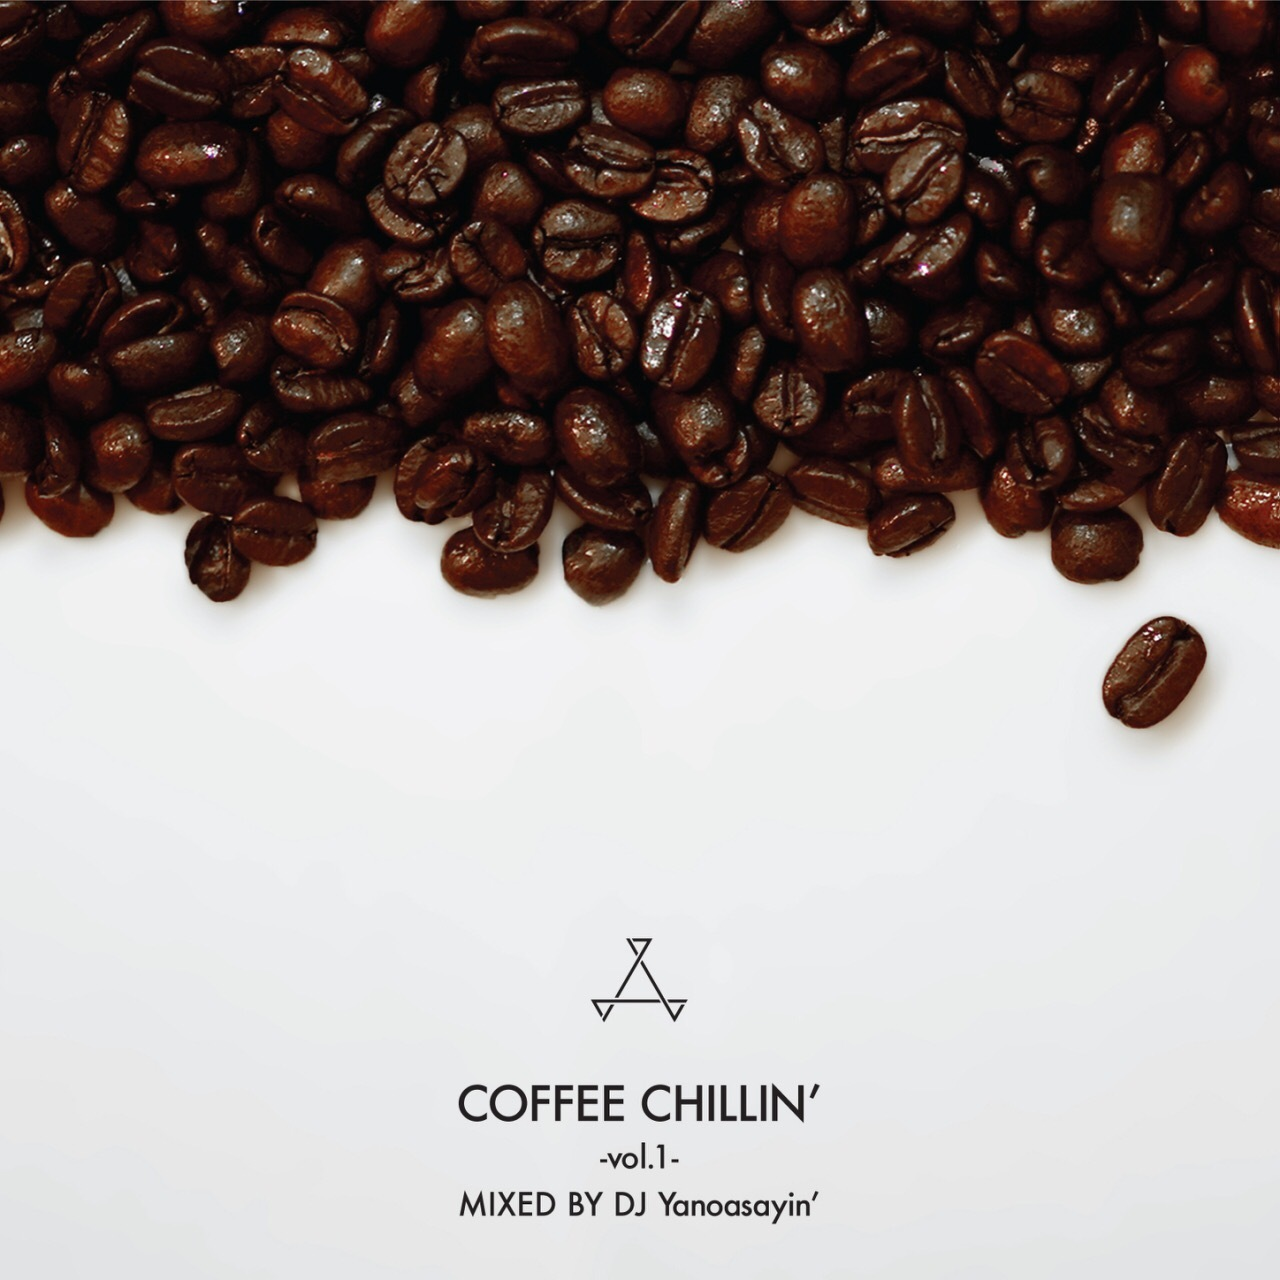 [MIX CD] DJ Yanoasayin' / COFFEE CHILLIN' -vol.1-